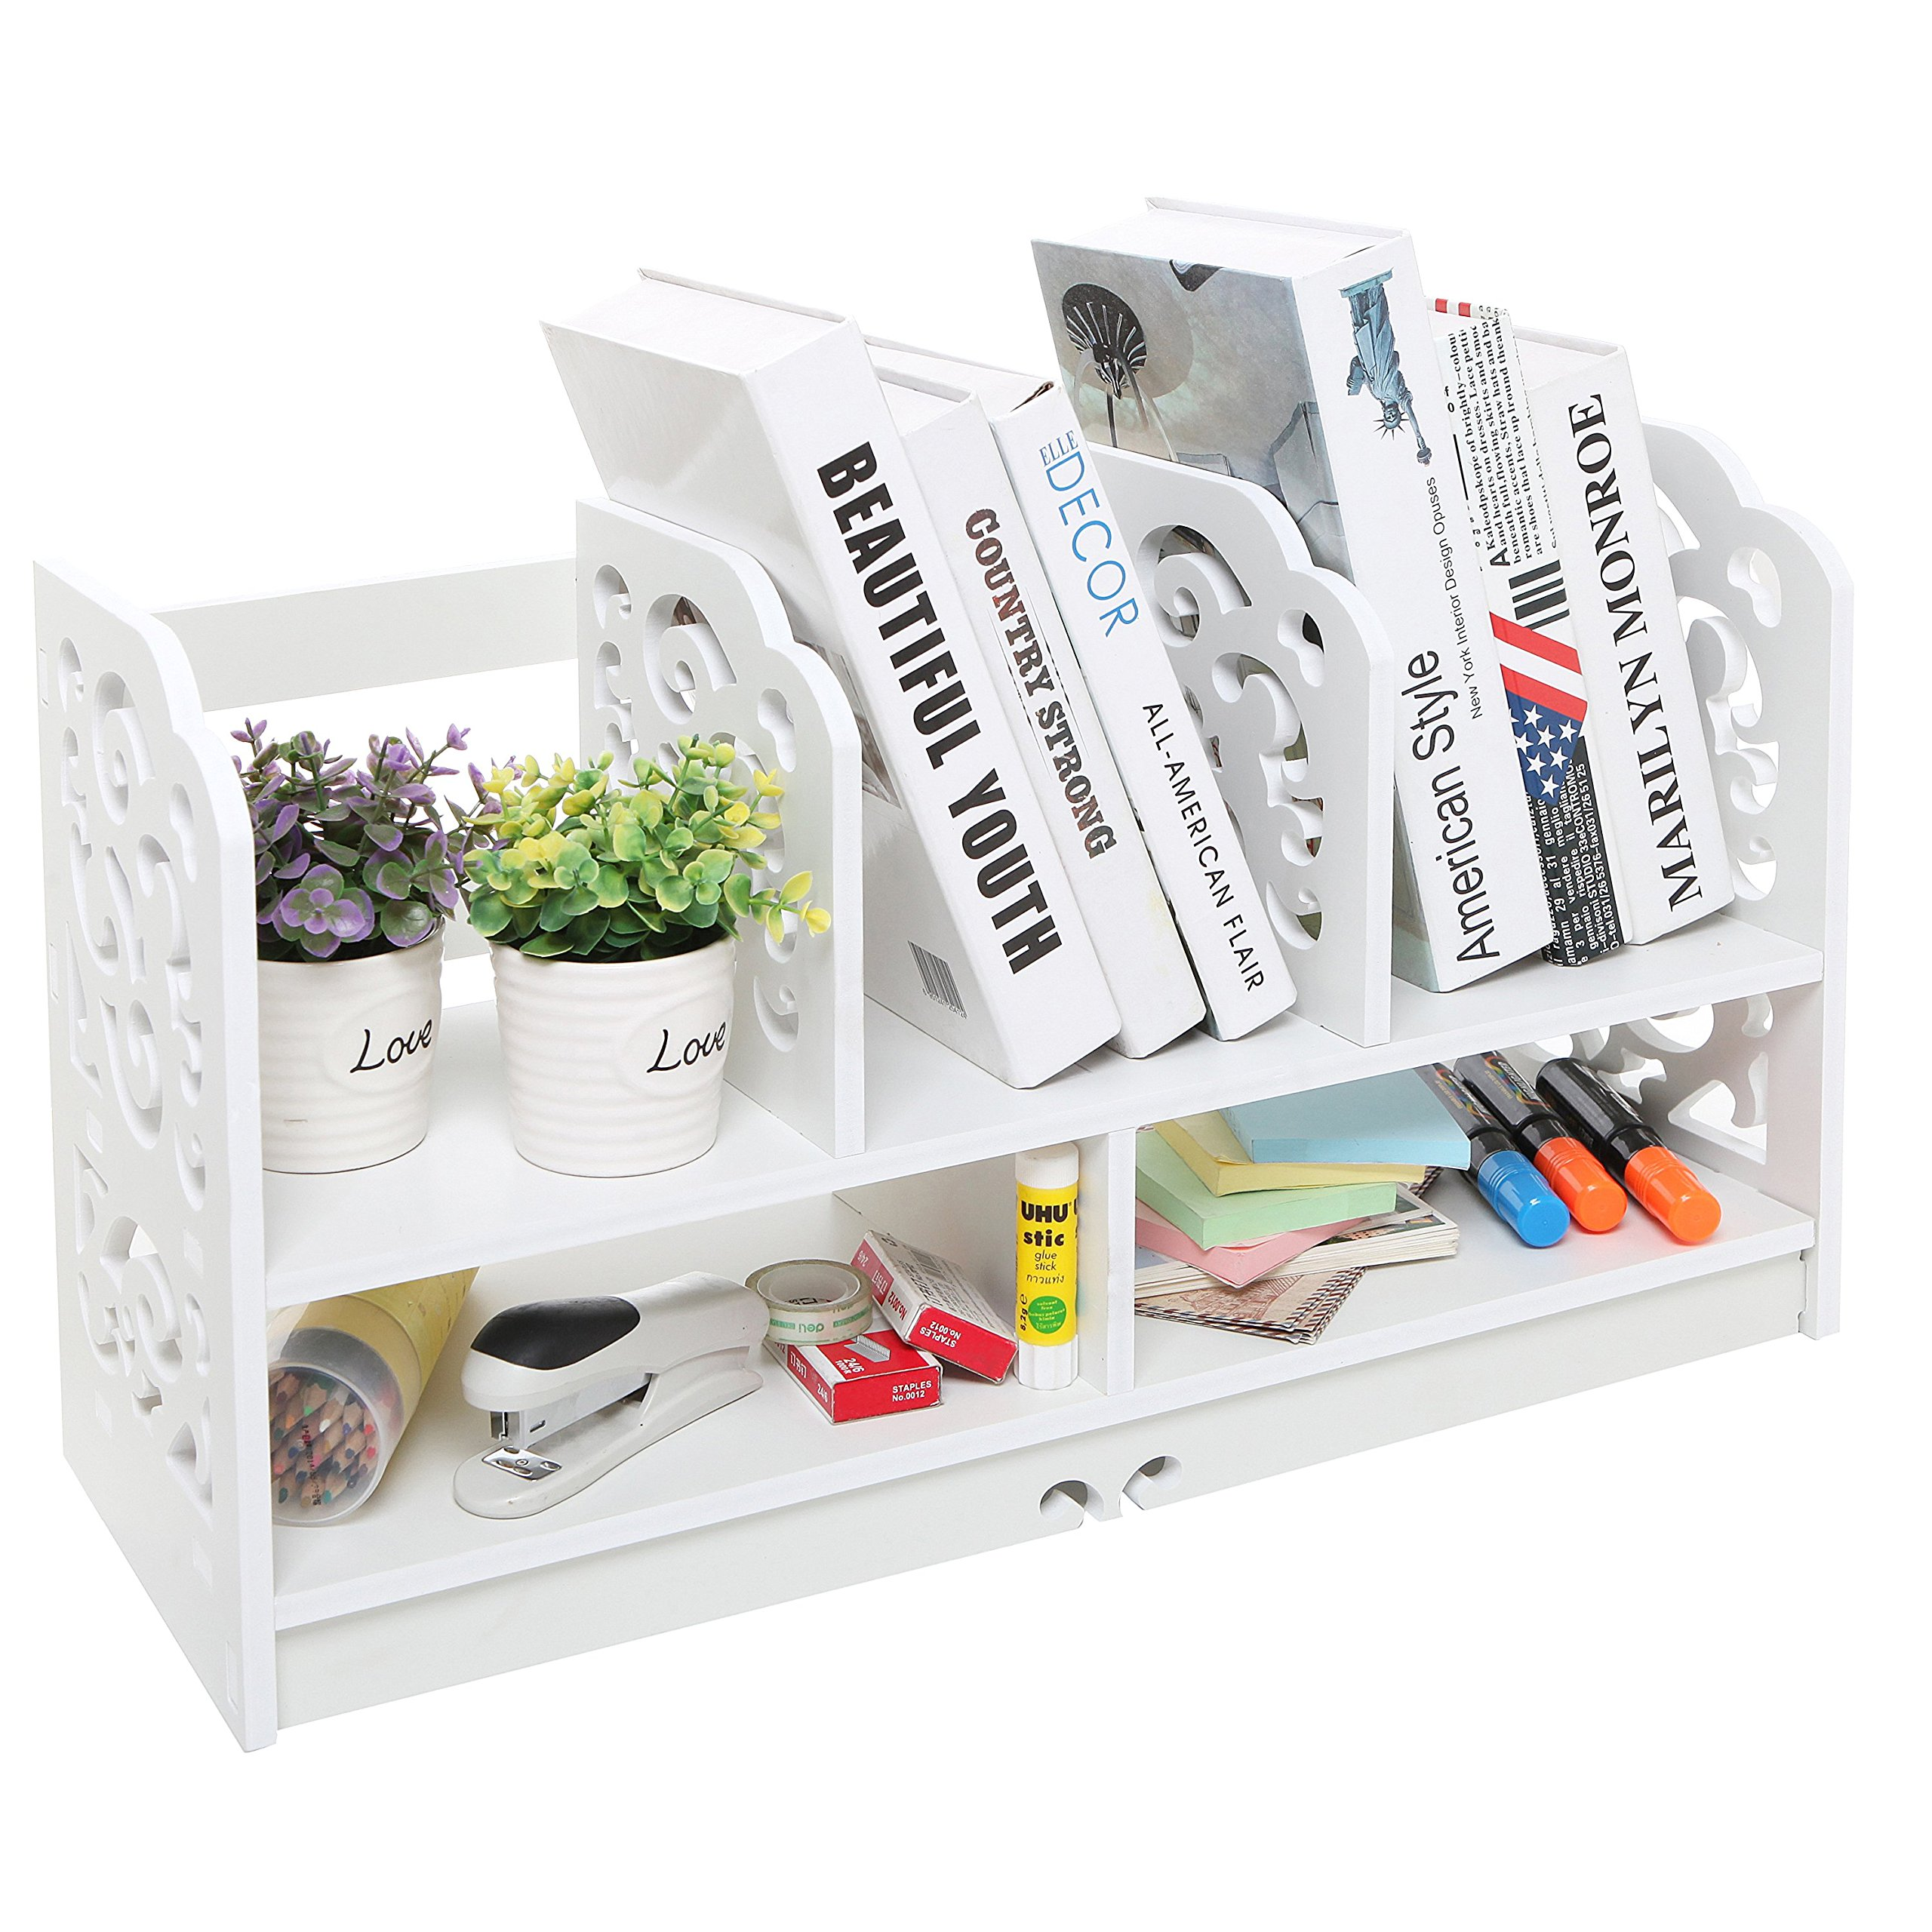 MyGift Freestanding 23 Inch Book Case, Decorative Display Shelf Rack, White